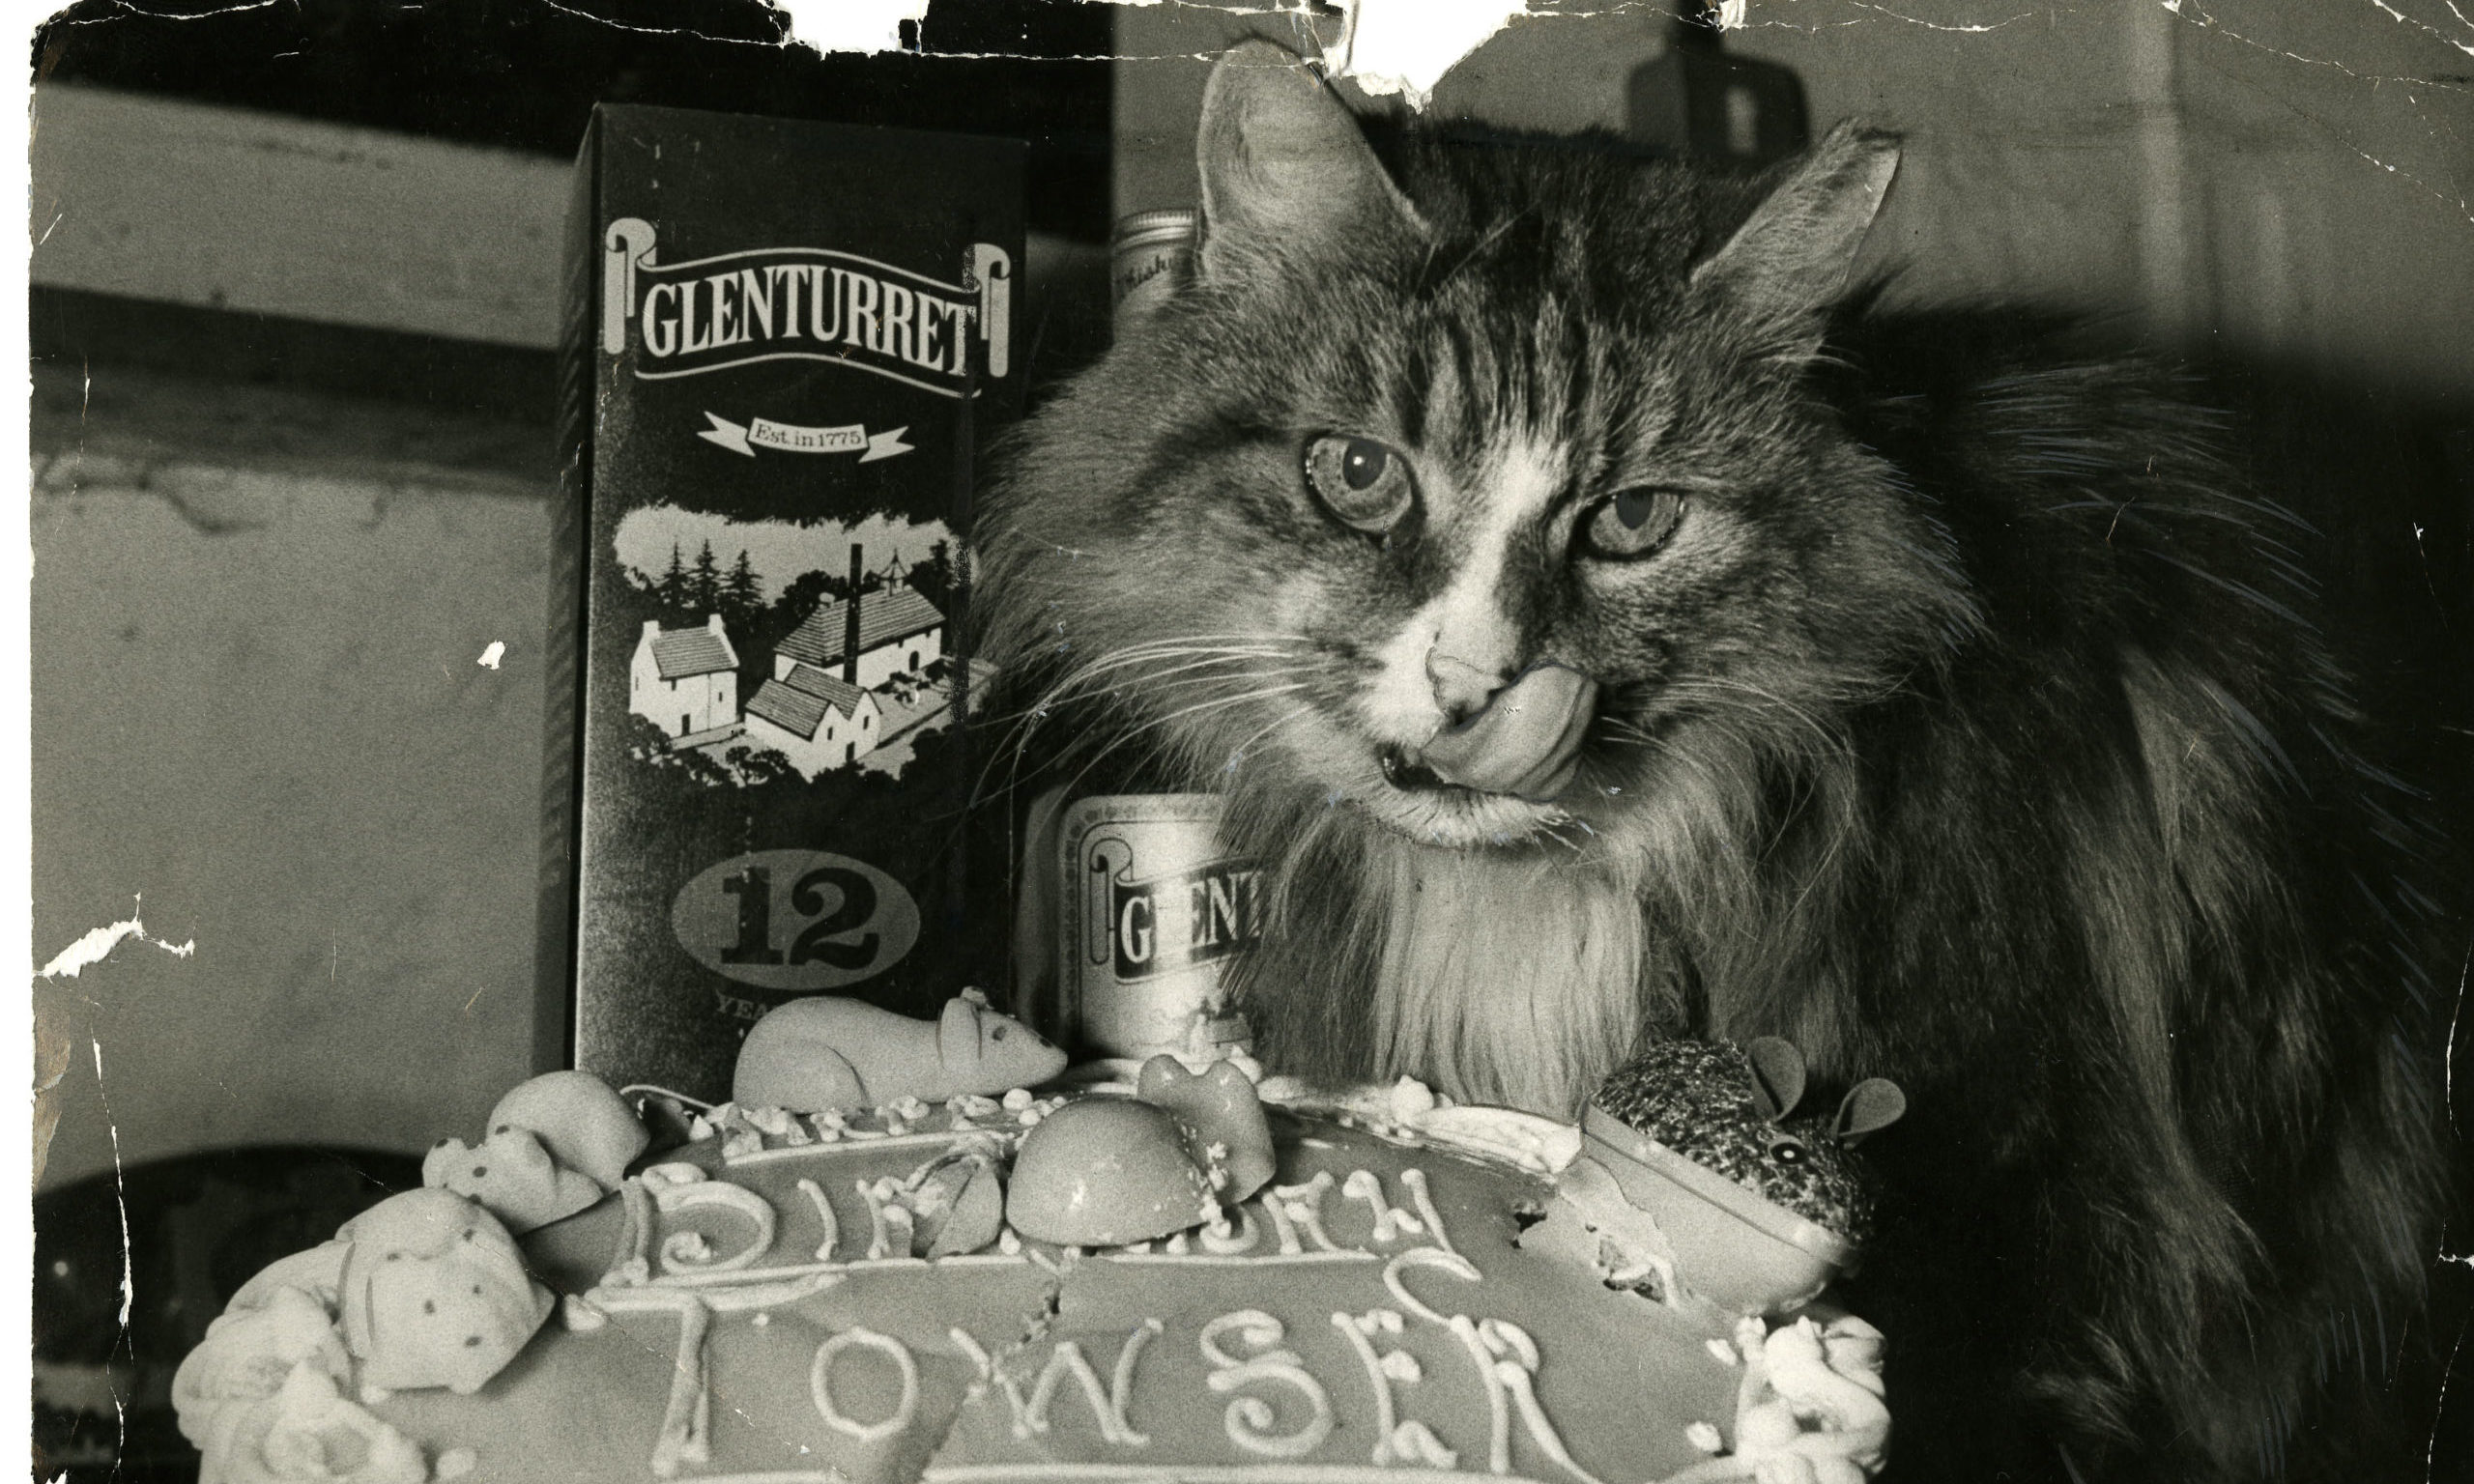 Towser, the famous Glenturret Distillery cat.